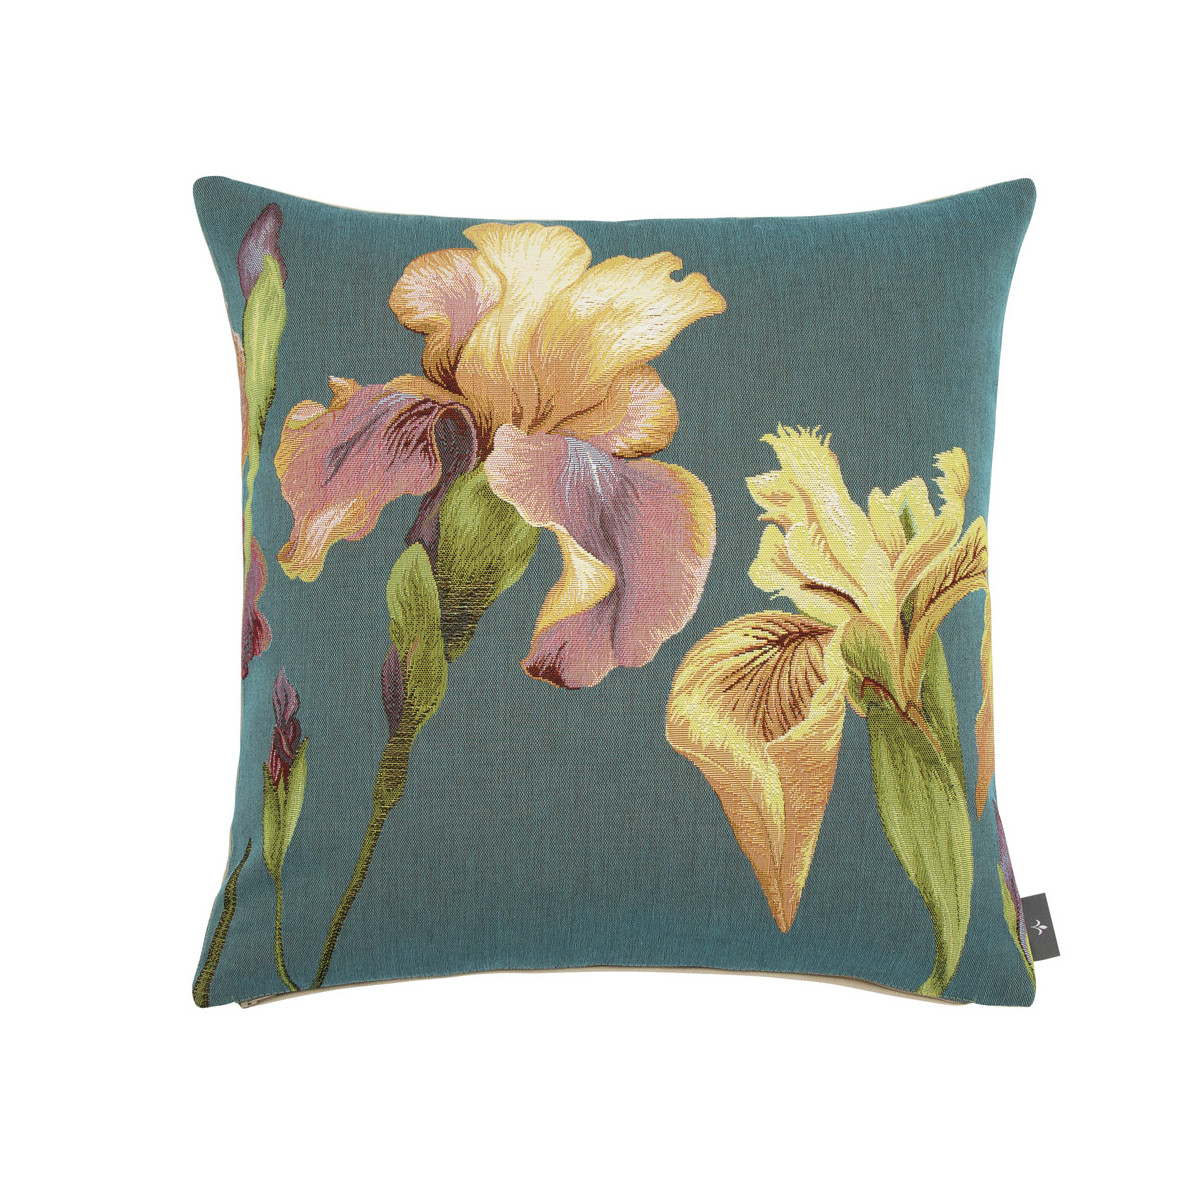 Coussin tapisserie giverny iris made in france bleu   50x50